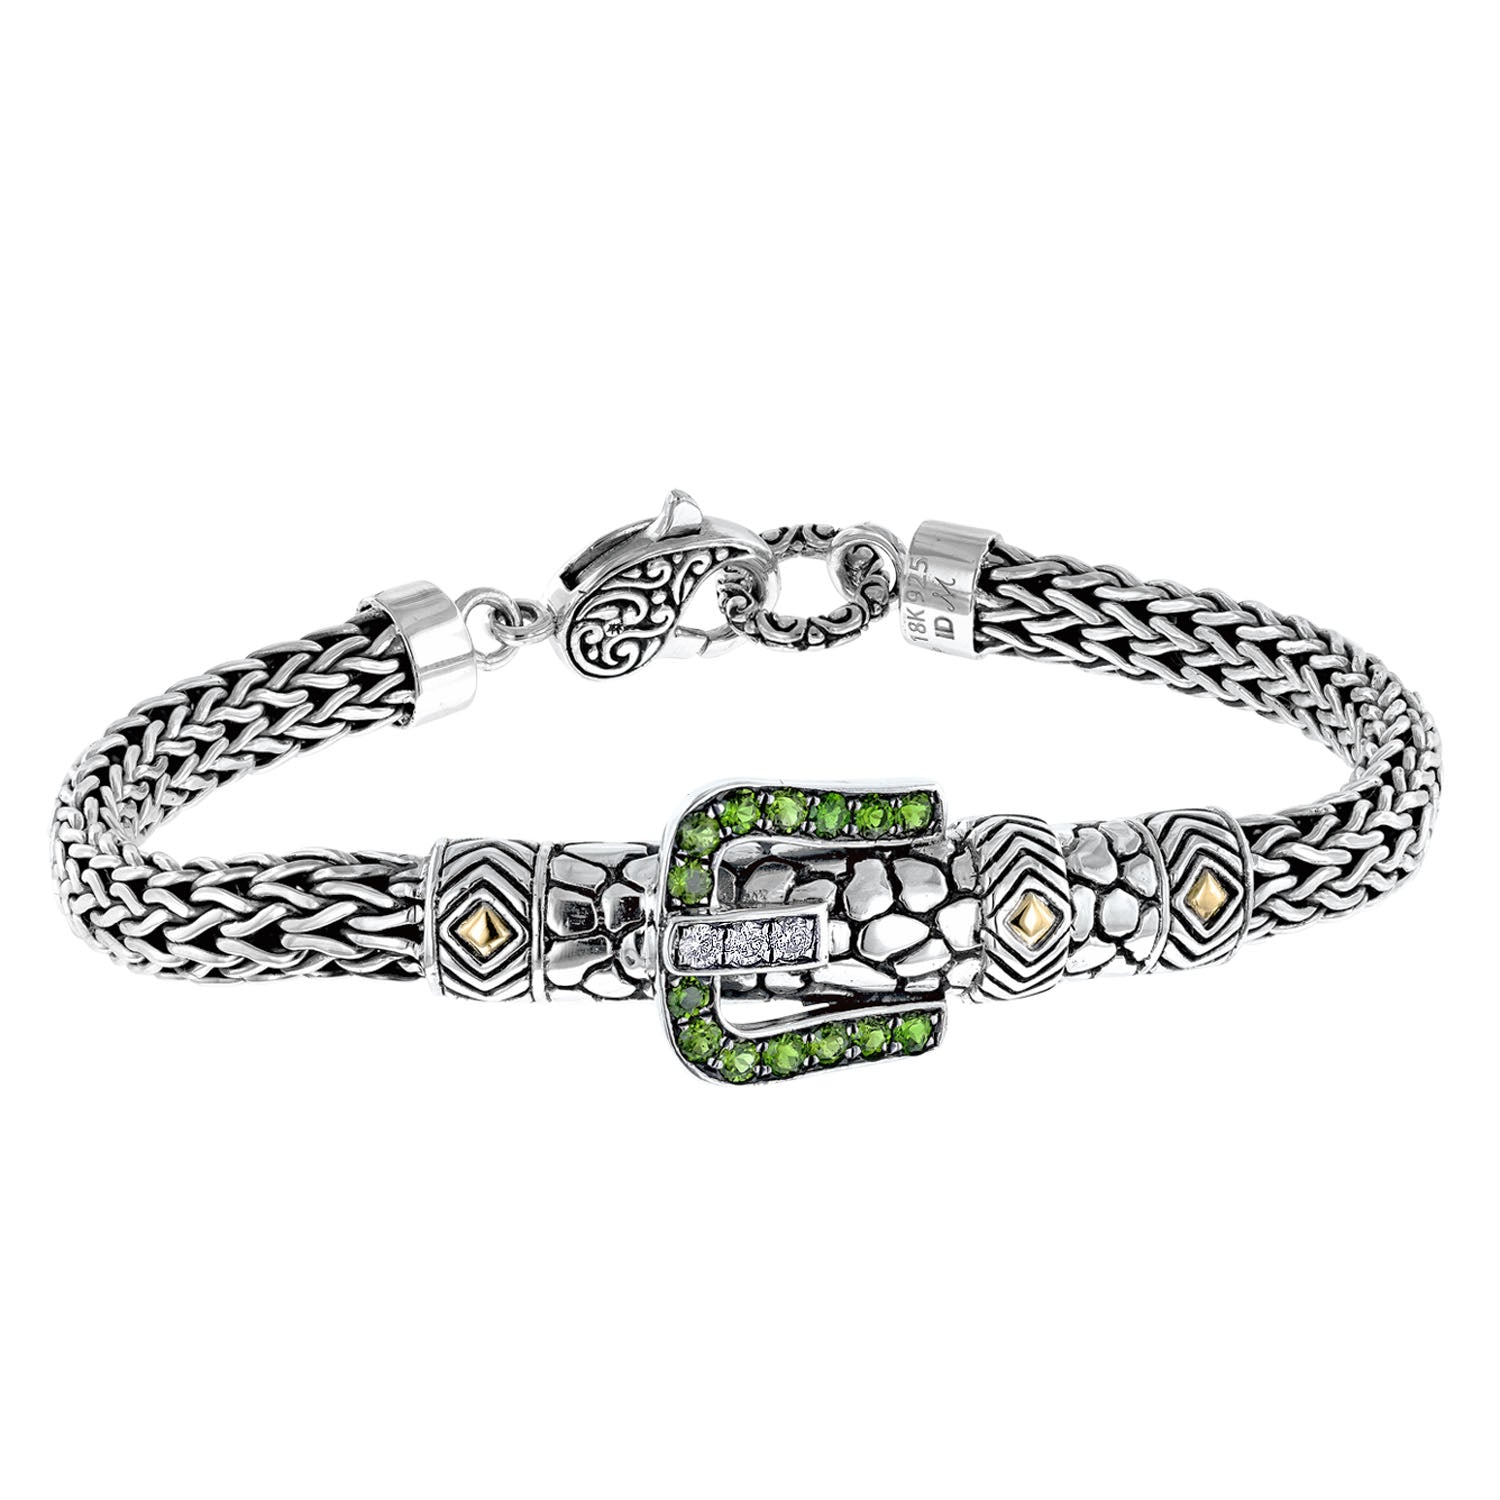 Bali Sterling Silver Gemstone and Diamond Buckle Rope Bracelet with Lobster Clasp and 18K Gold Accents